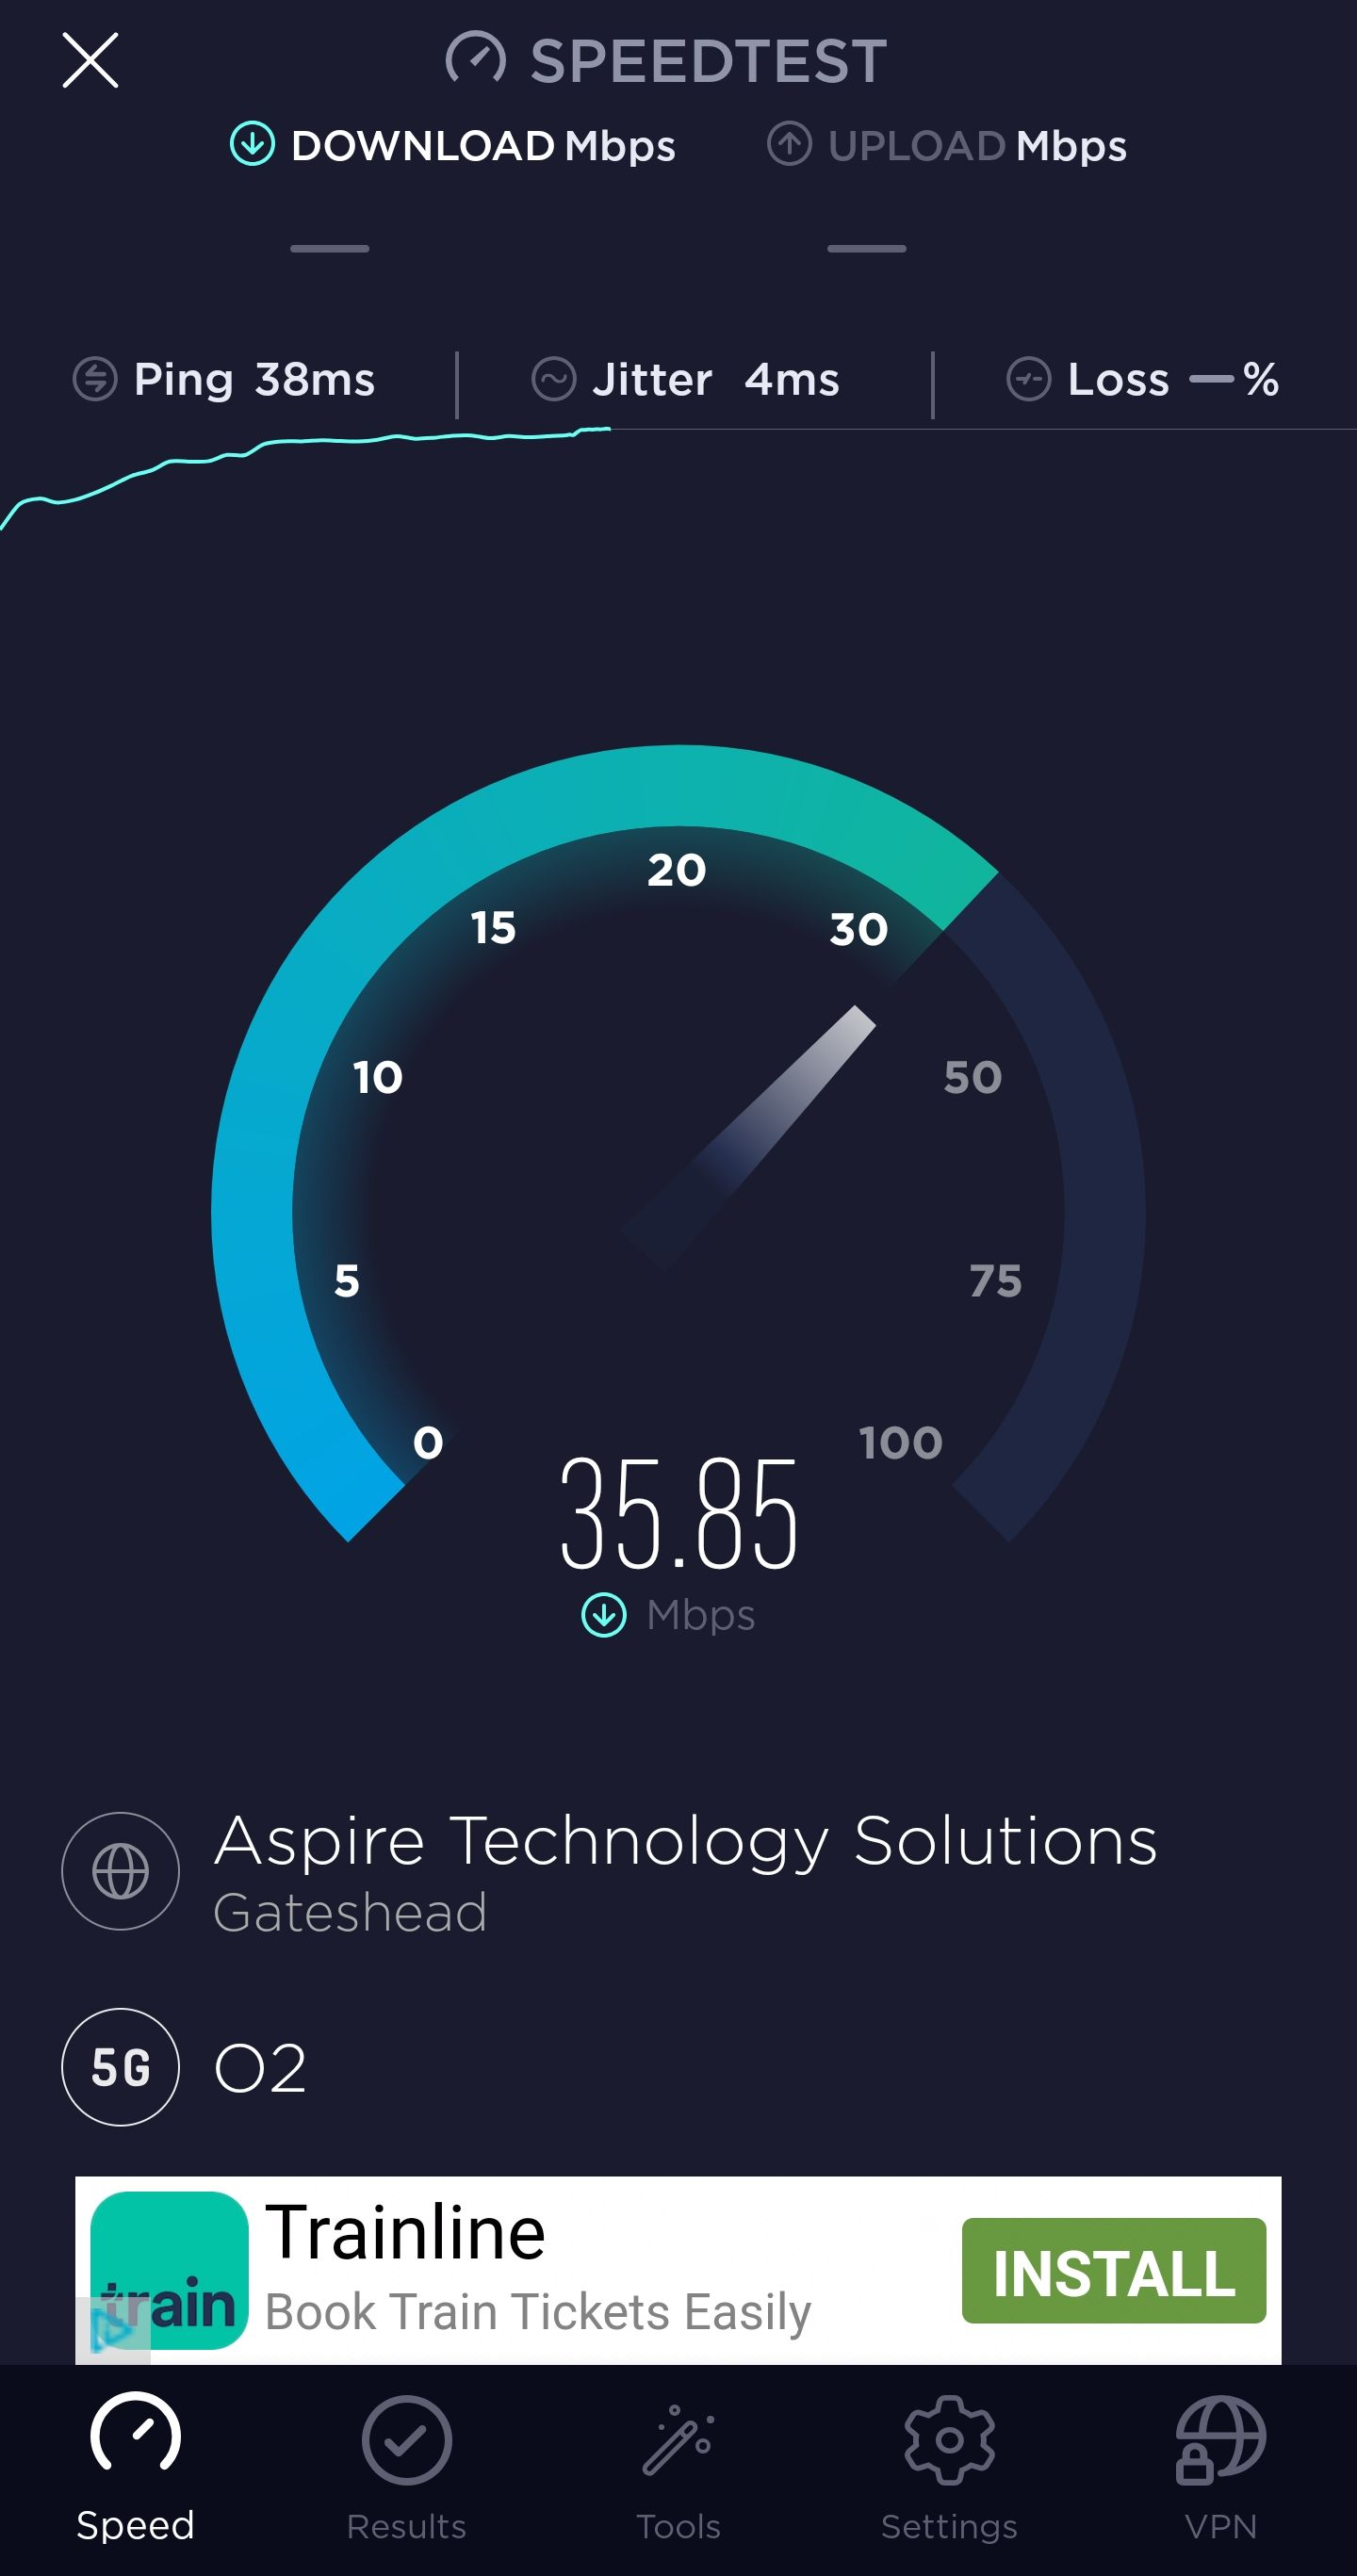 Screenshot_20191010-092855_Speedtest.jpg